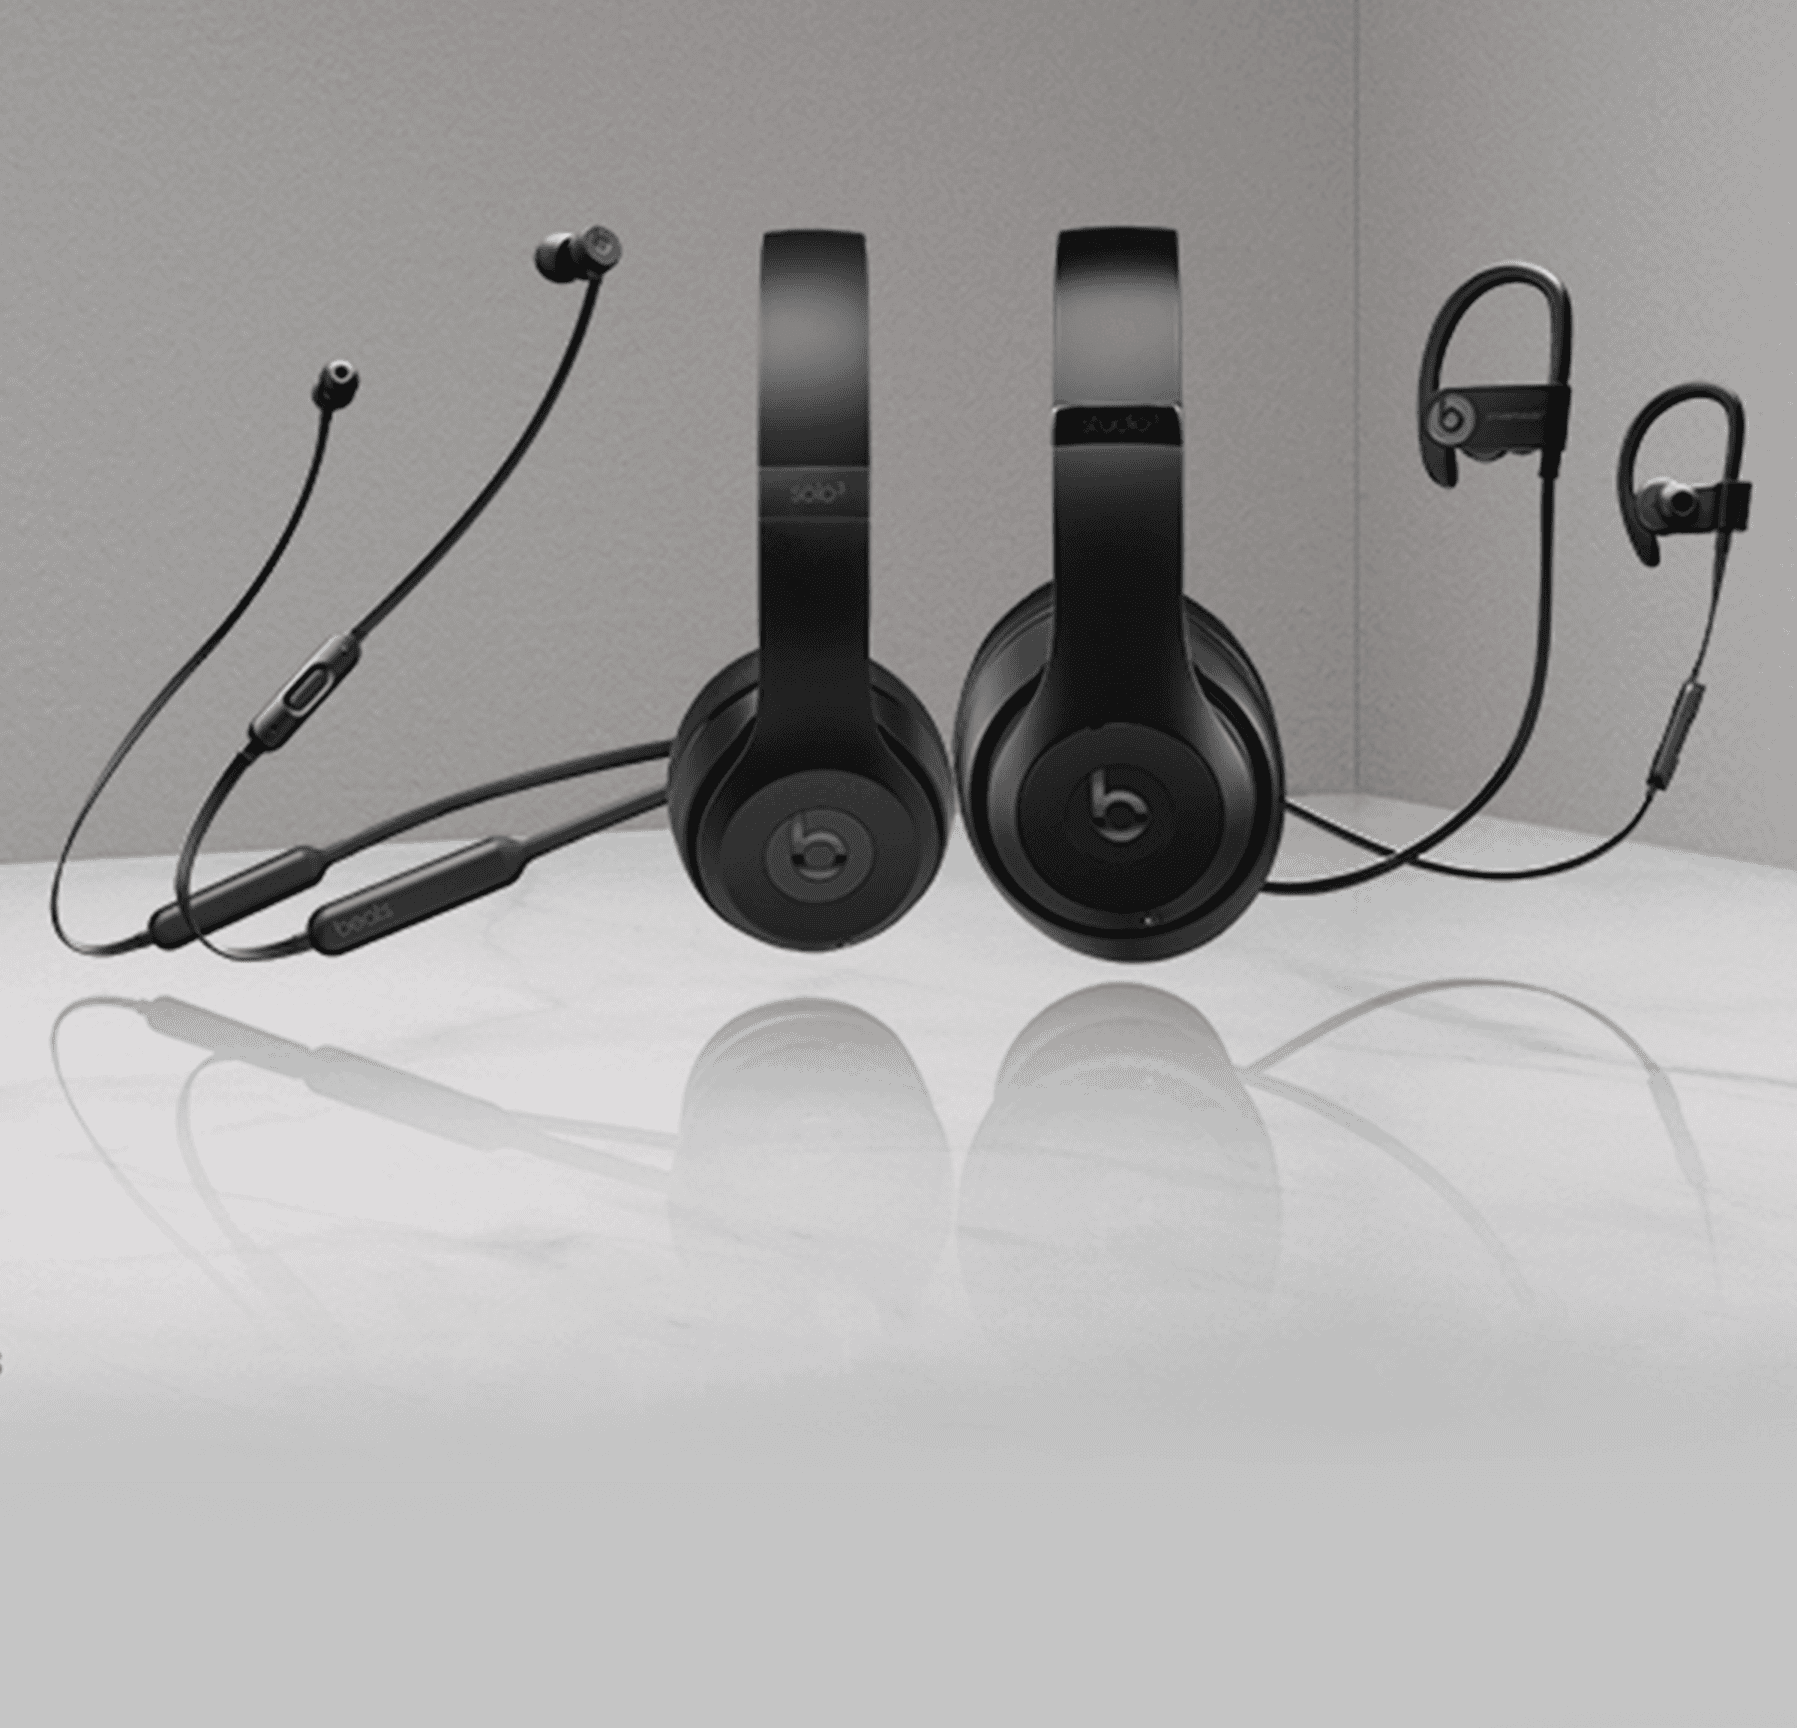 96f46be95f7 BEATS BY DR. DRE | Best Buy Canada